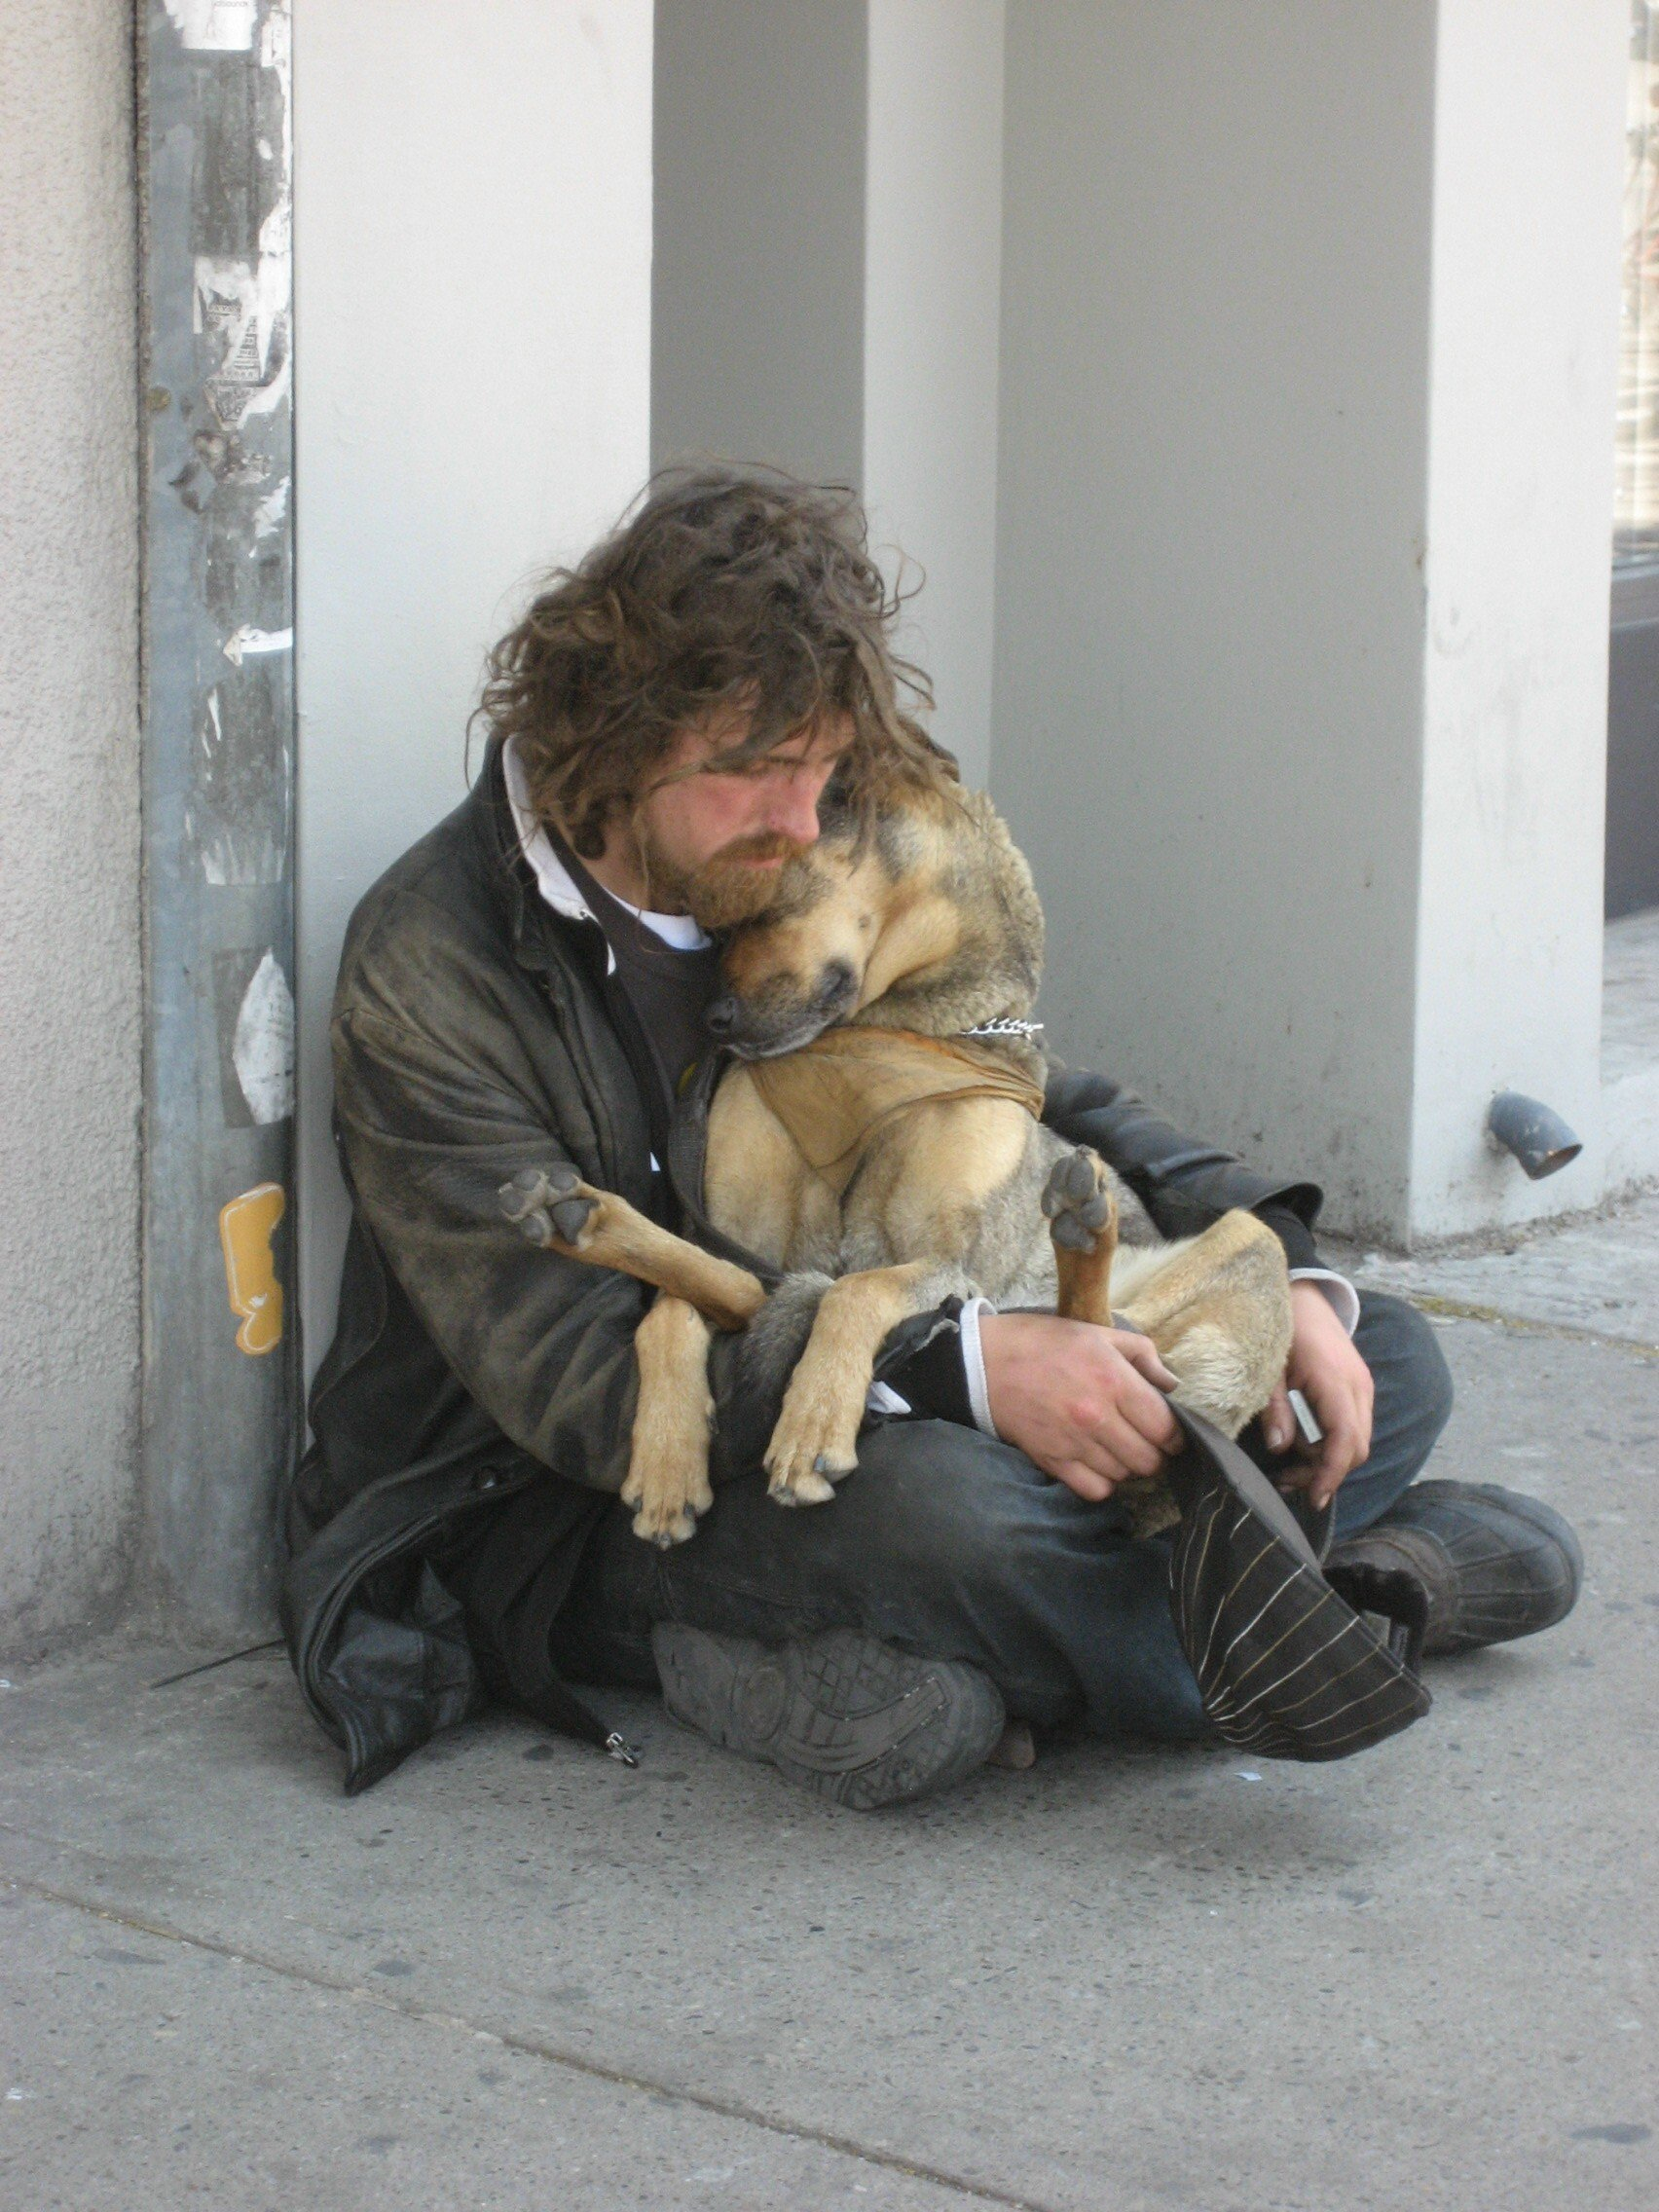 http://newworldodor.files.wordpress.com/2009/02/homeless-cuddling-dog-by-kirsten-bole-100-dpi.jpg